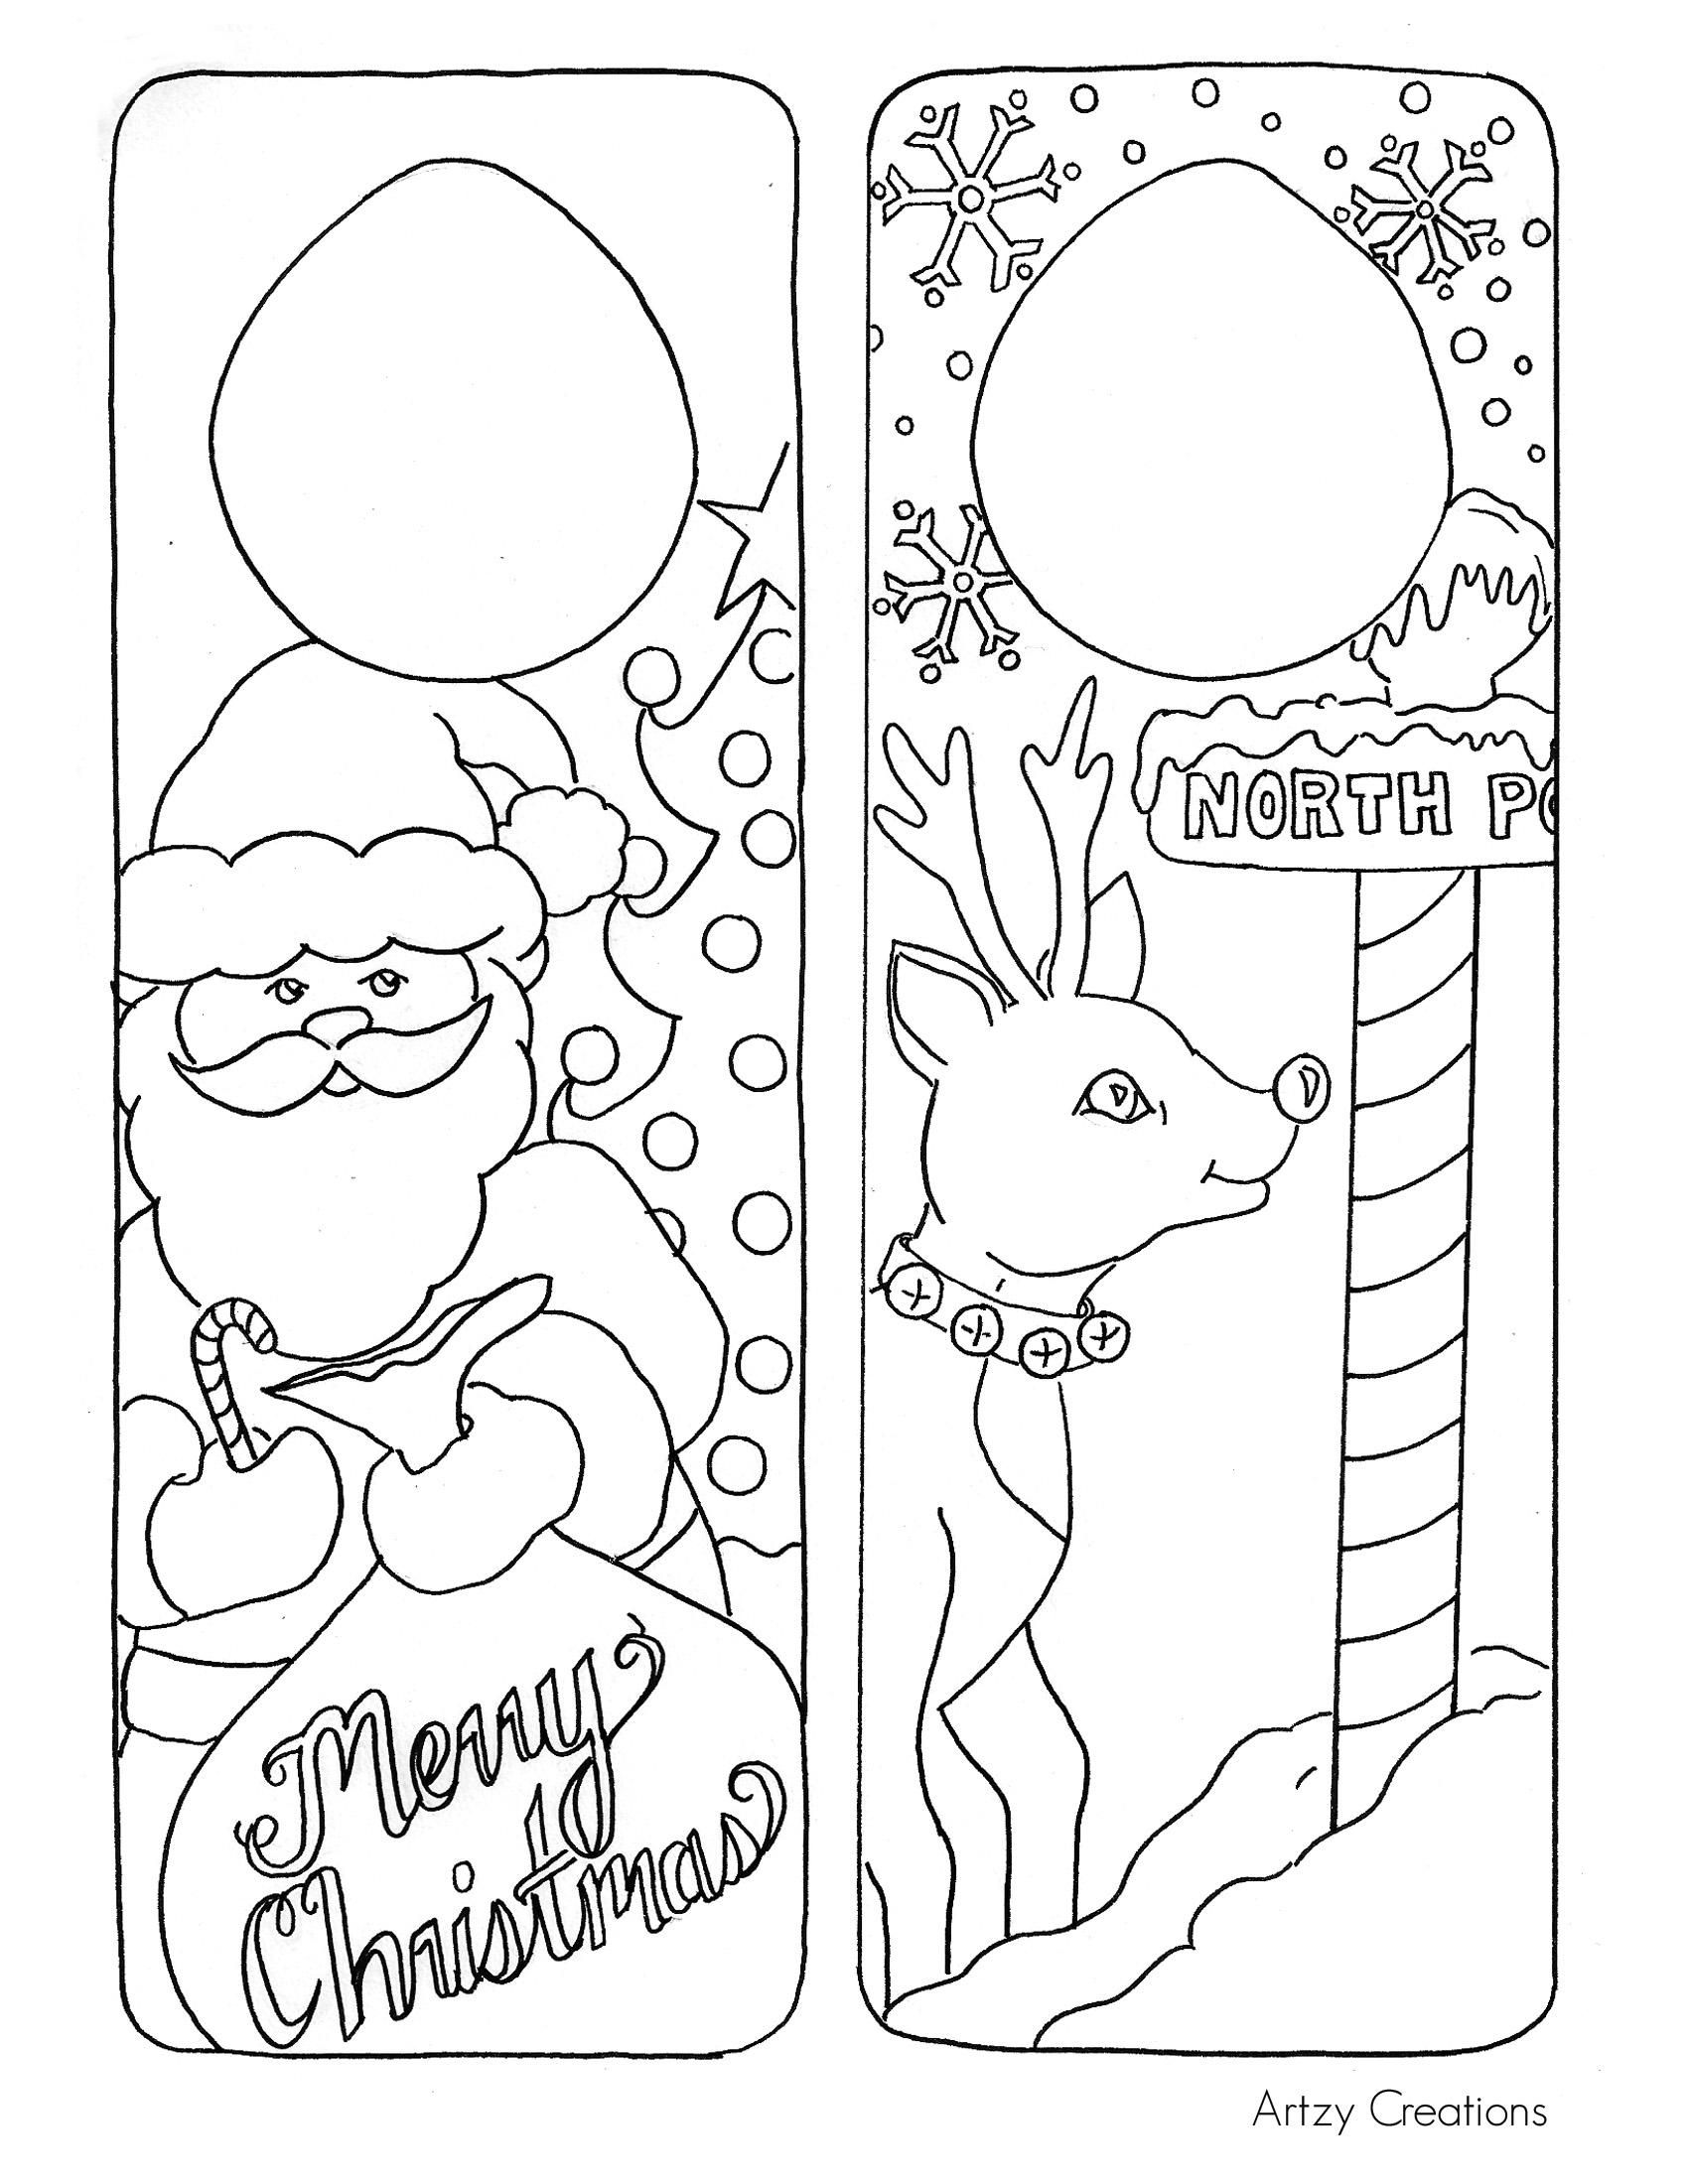 38 Free Printouts For Coloring Christmas Coloring Cards Coloring Holiday Cards Printable Christmas Coloring Pages